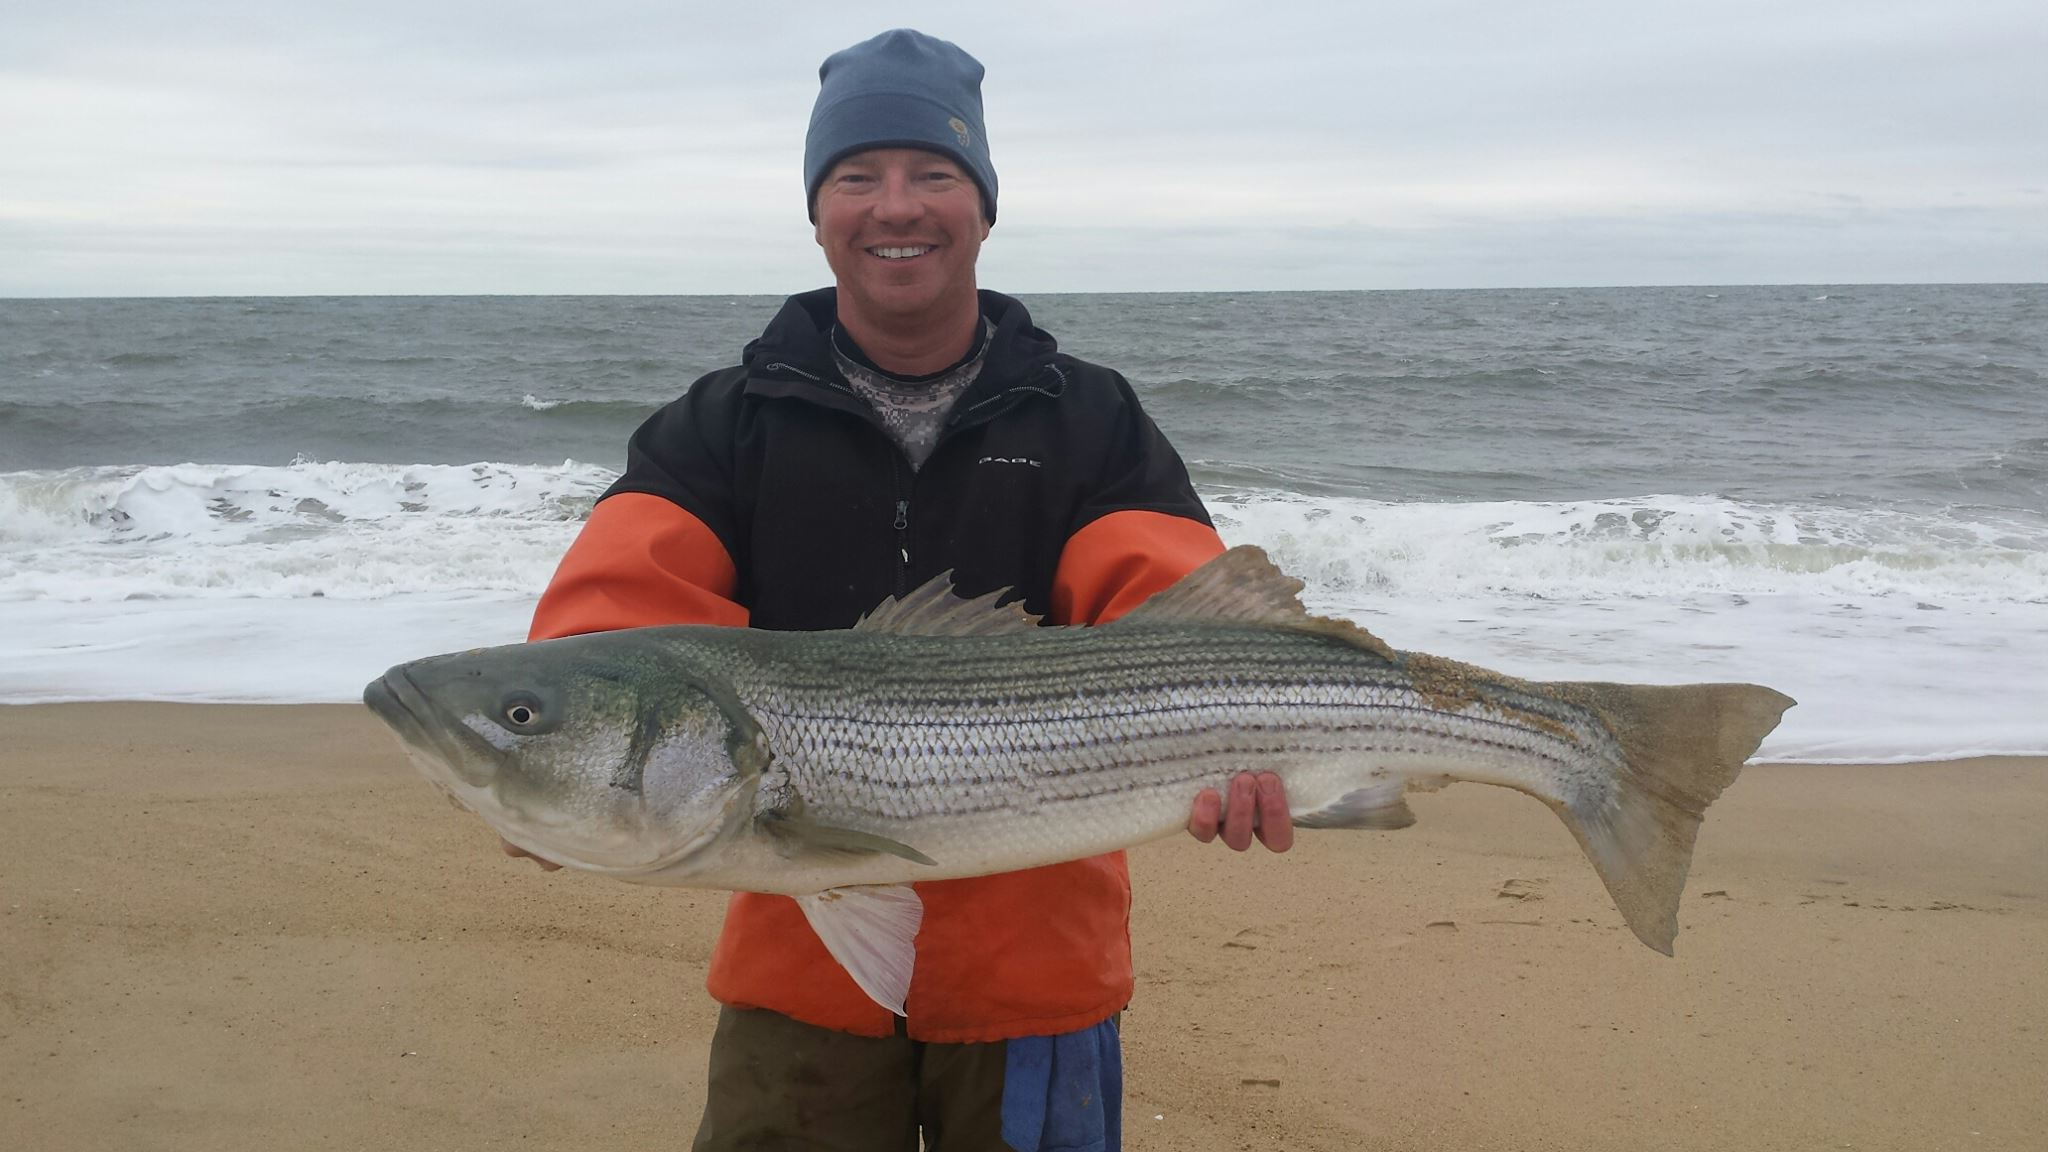 striped bass, rockfish, linesiders, cape henlopenstate park, fresh bunker, delaware, sussex county